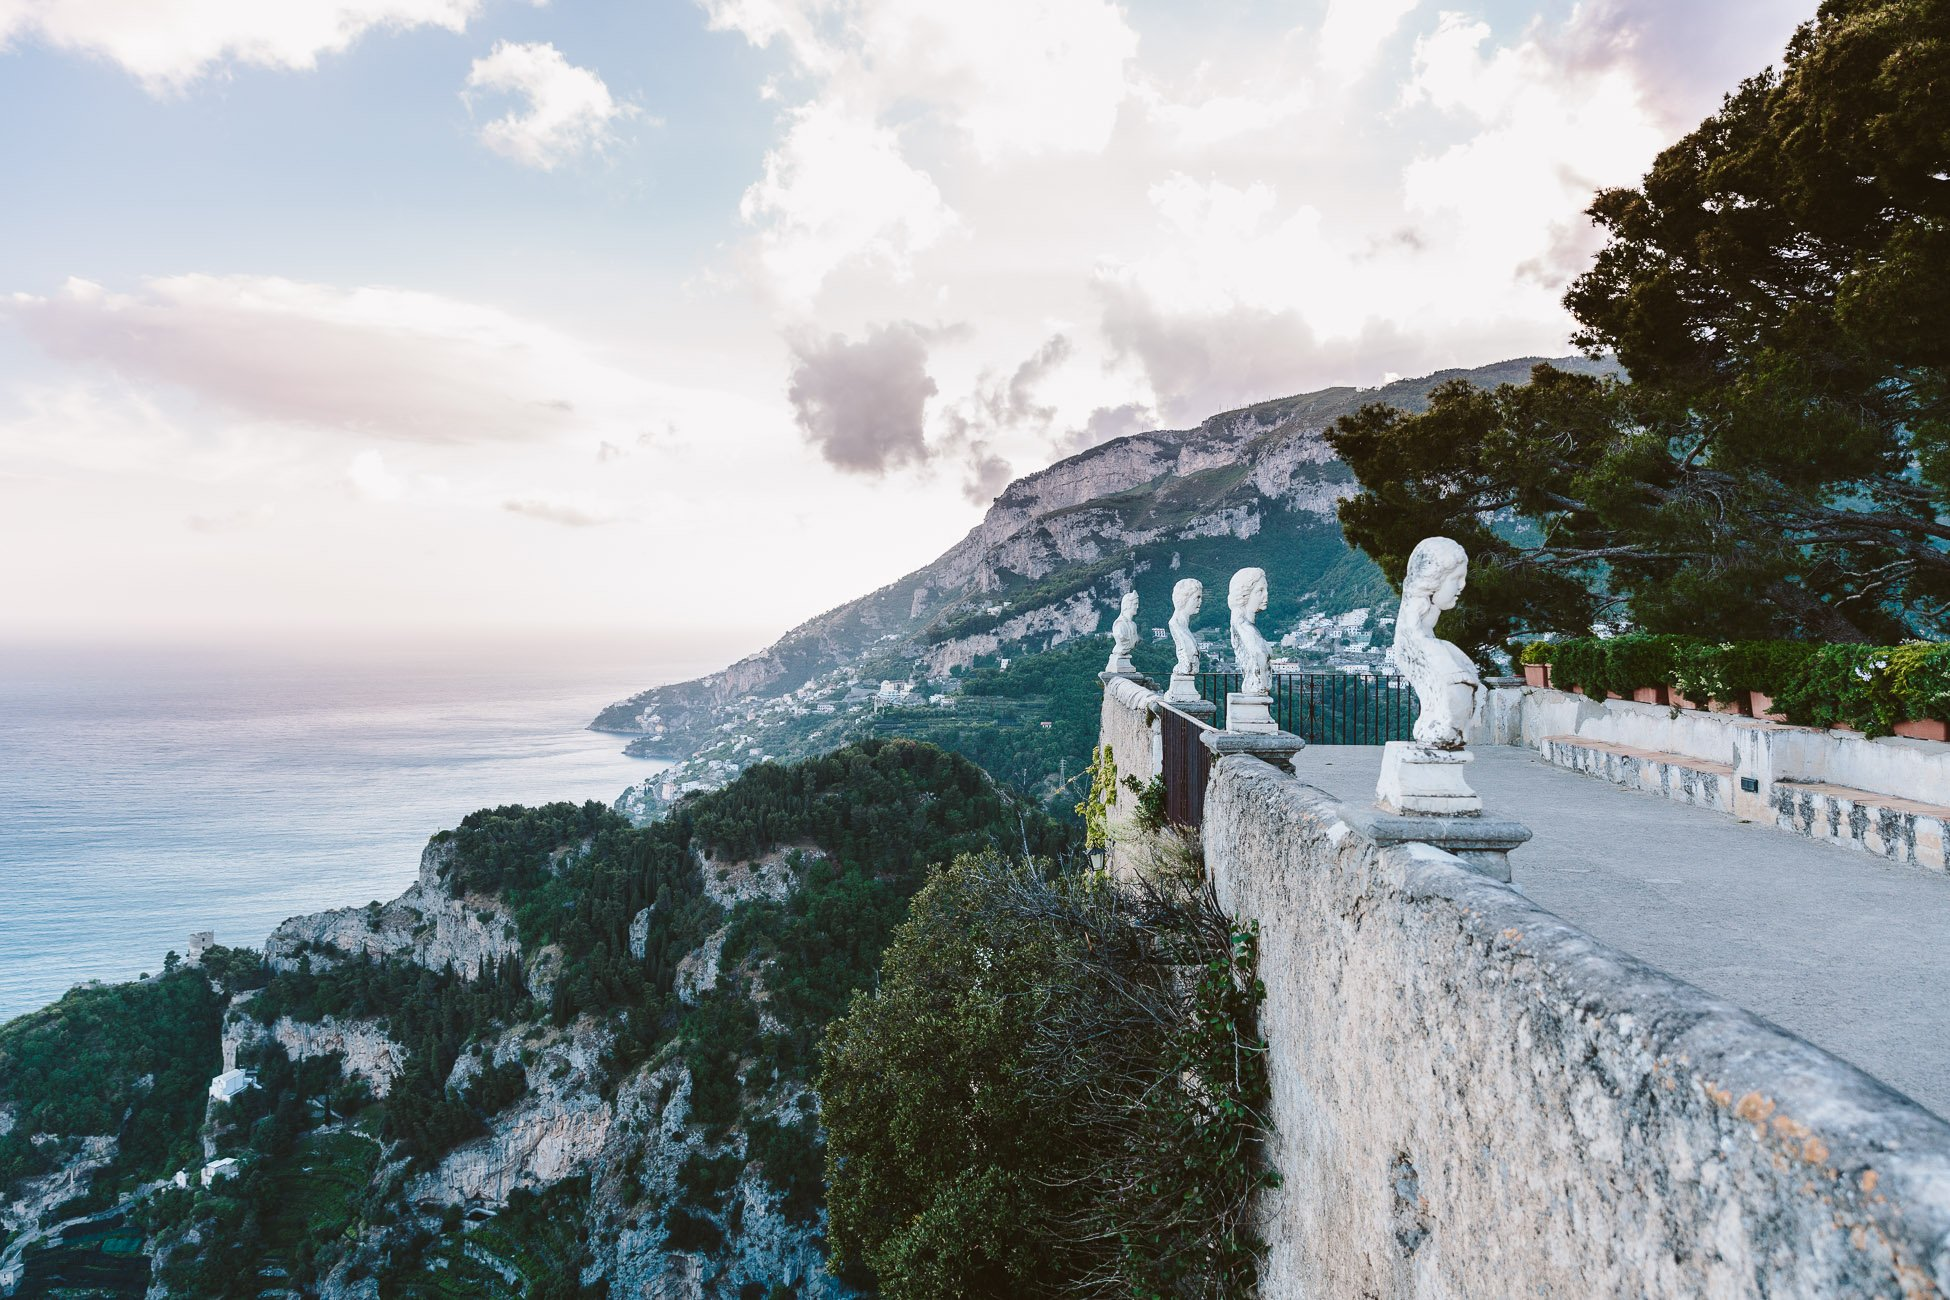 The famous balcony of Villa Cimbrone in Ravello